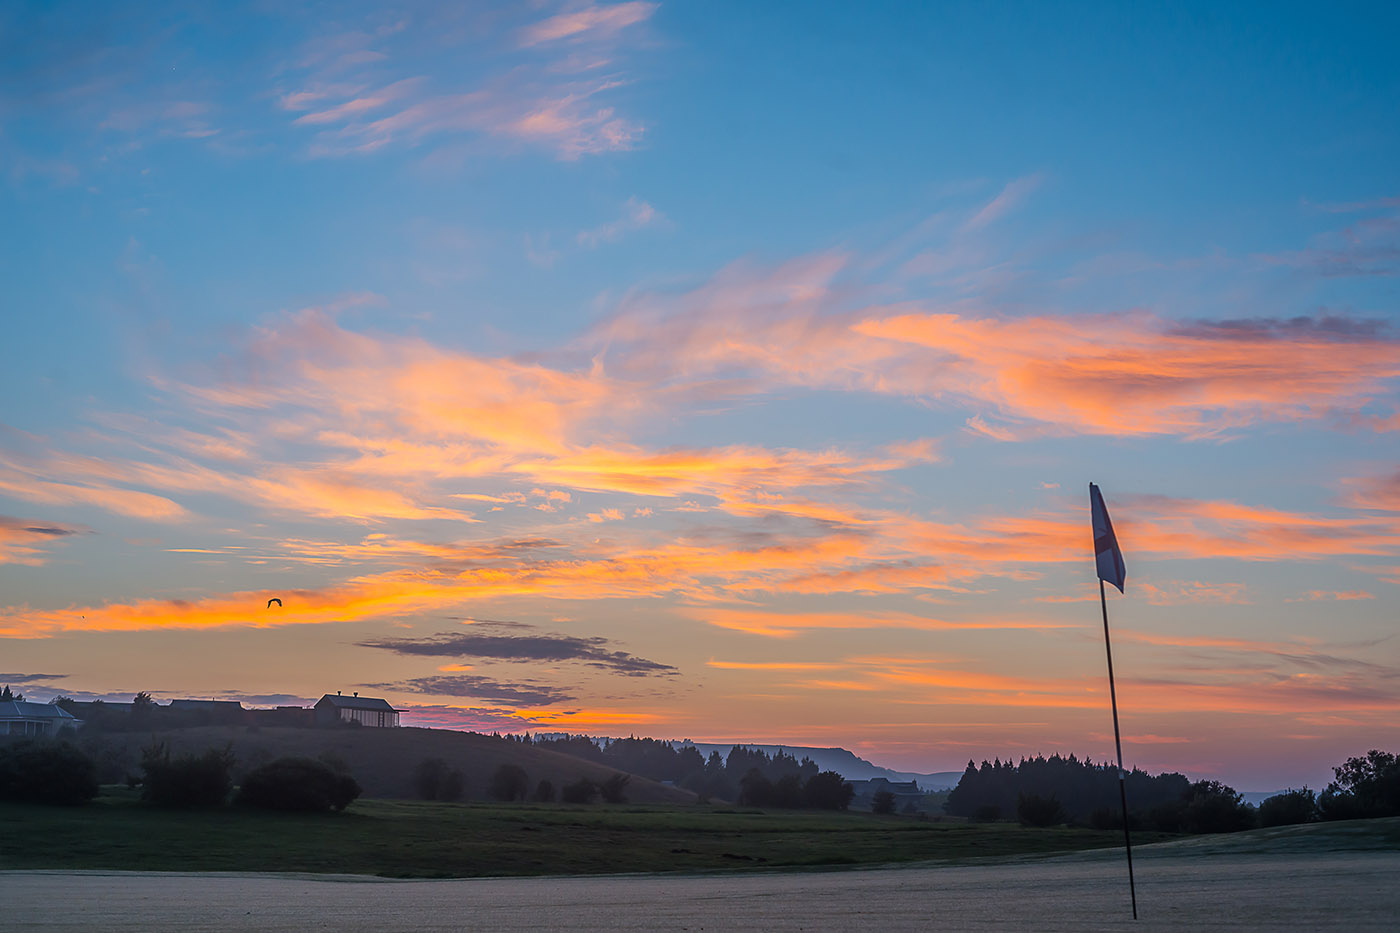 golf-gallery-gowrie-farm-fishing-classic-golf-course-country-getaway-kzn